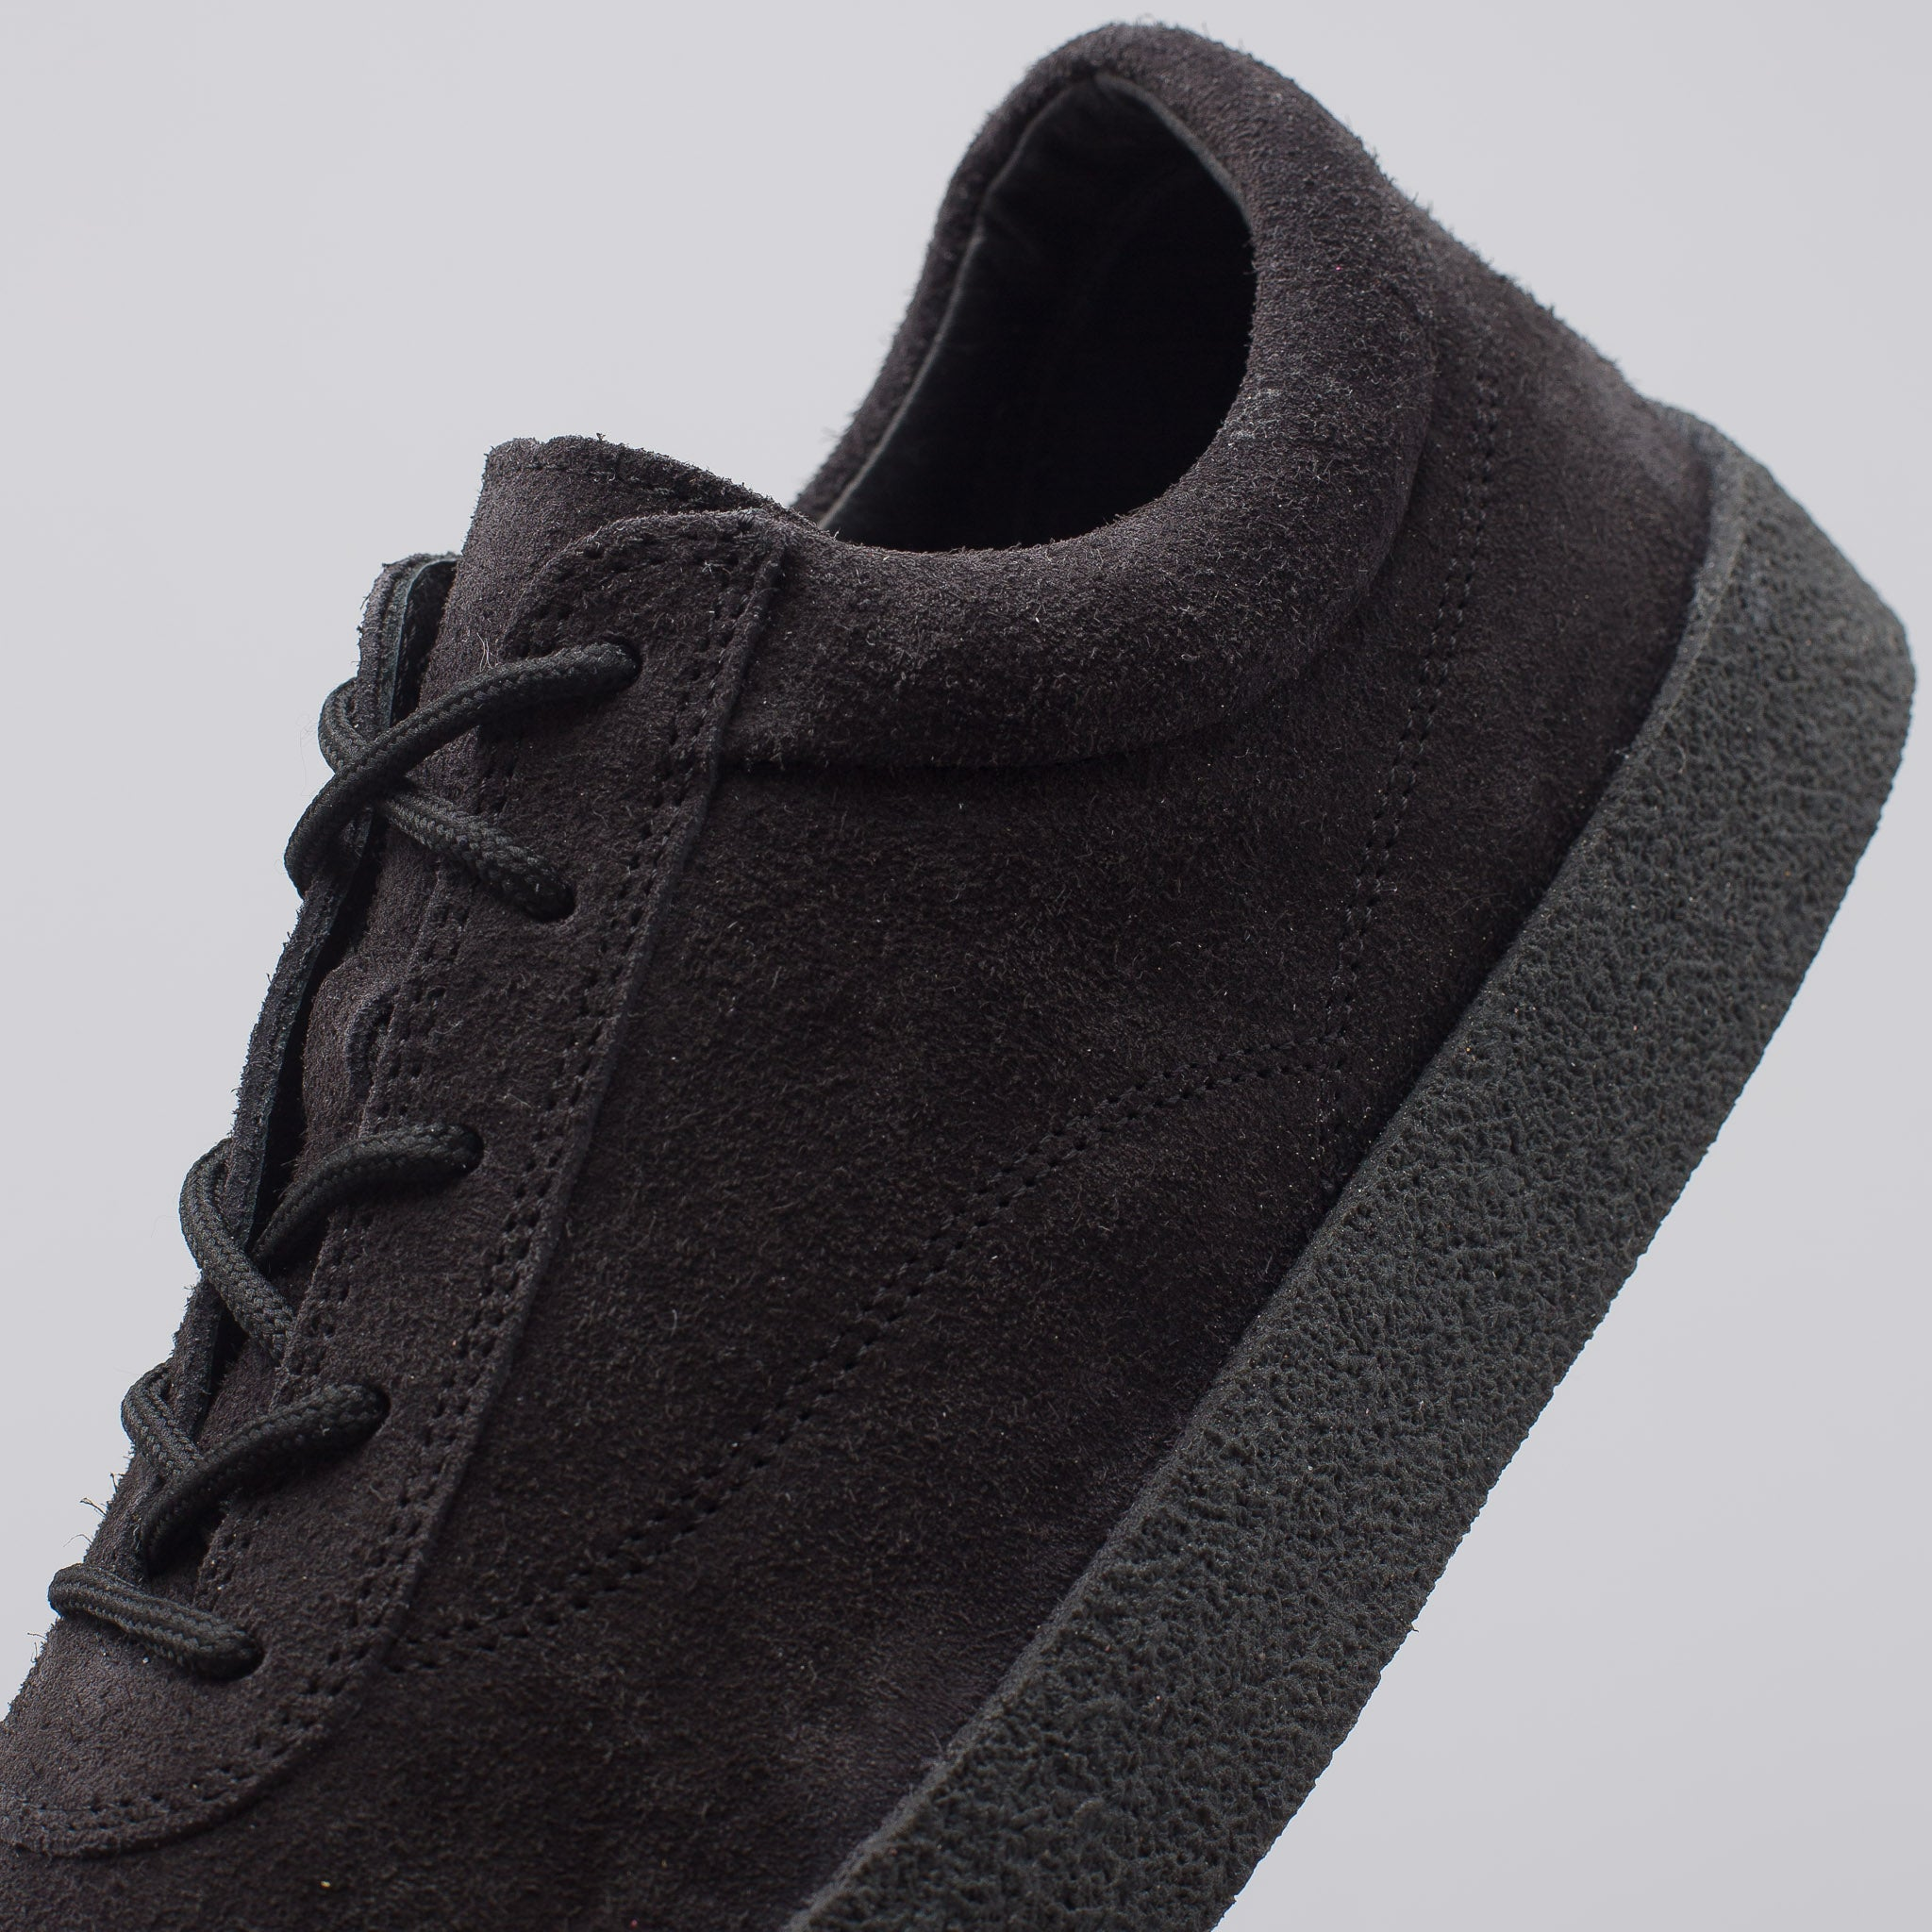 Crepe Sneaker in Graphite Shaggy Suede